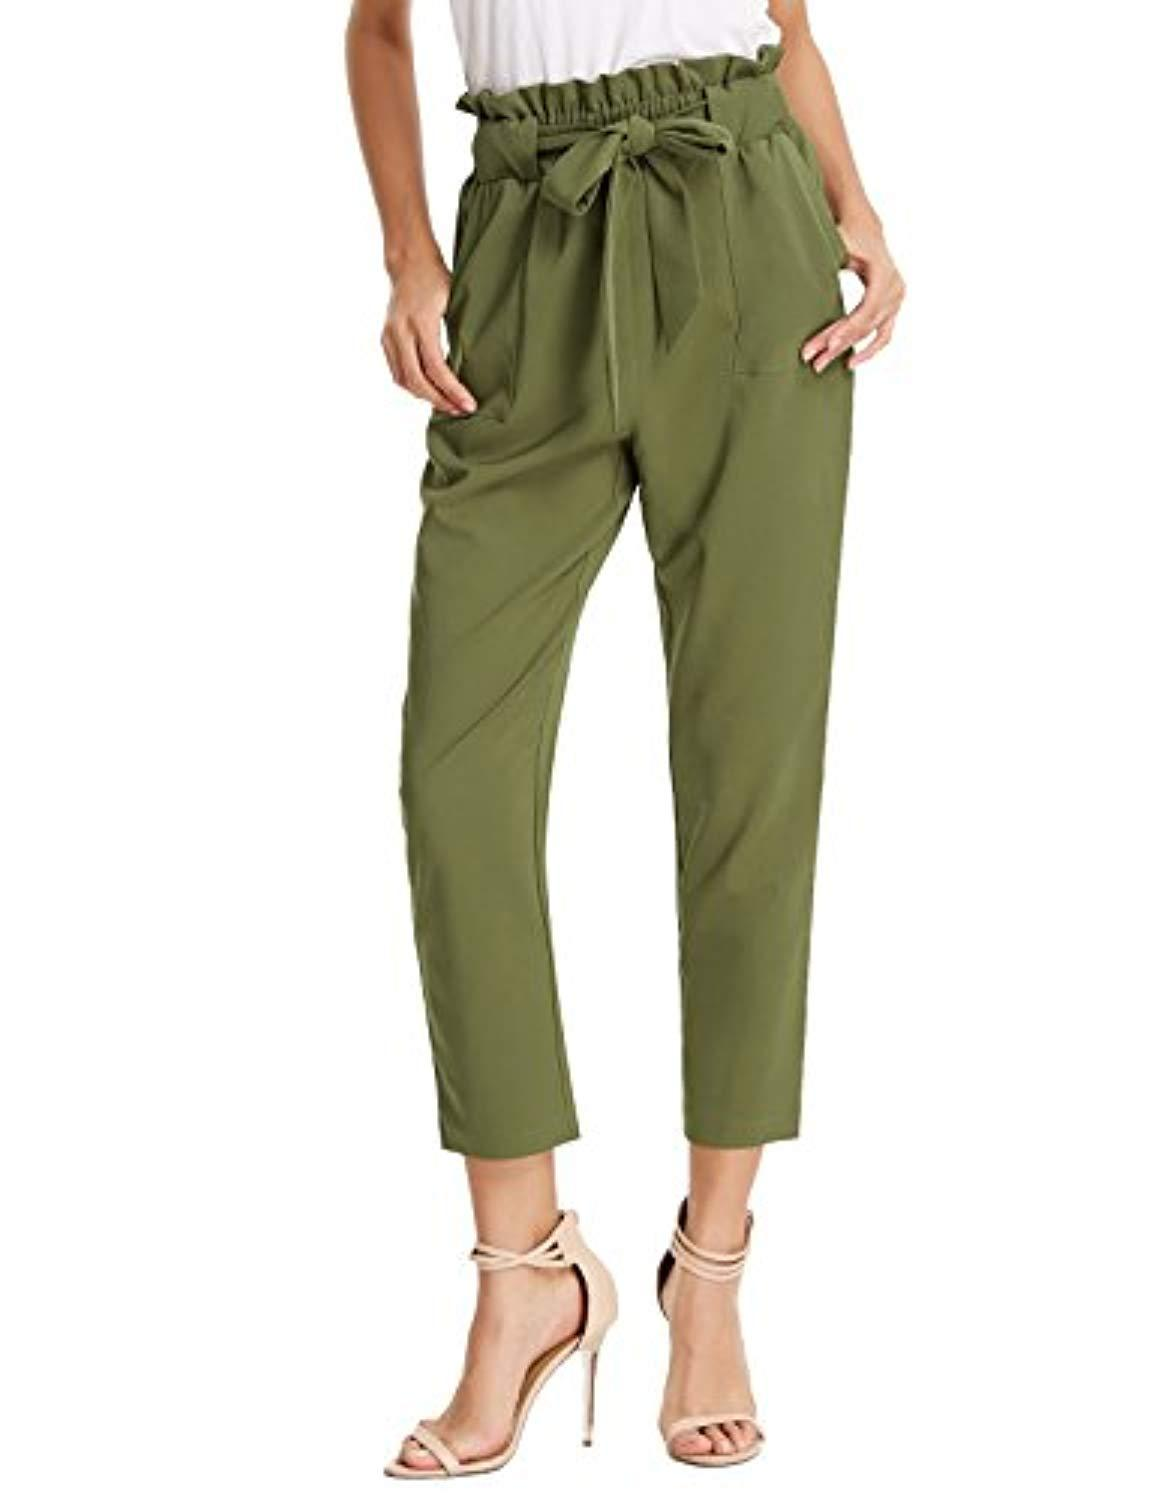 GRACE KARIN Women's Cropped Paper Bag Waist Pants with Pockets